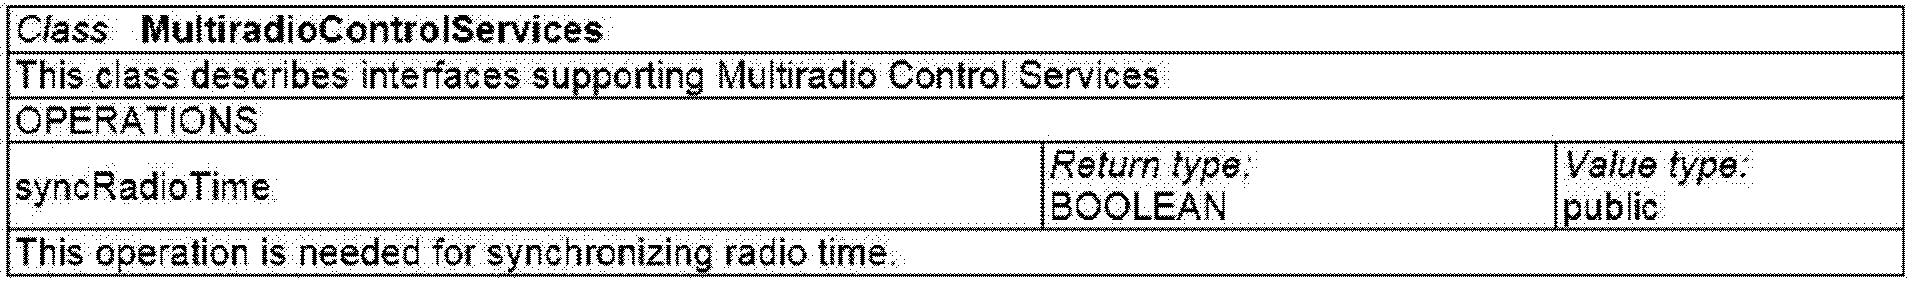 WO2017030353A1 - Reconfigurable mobile device using unified radio